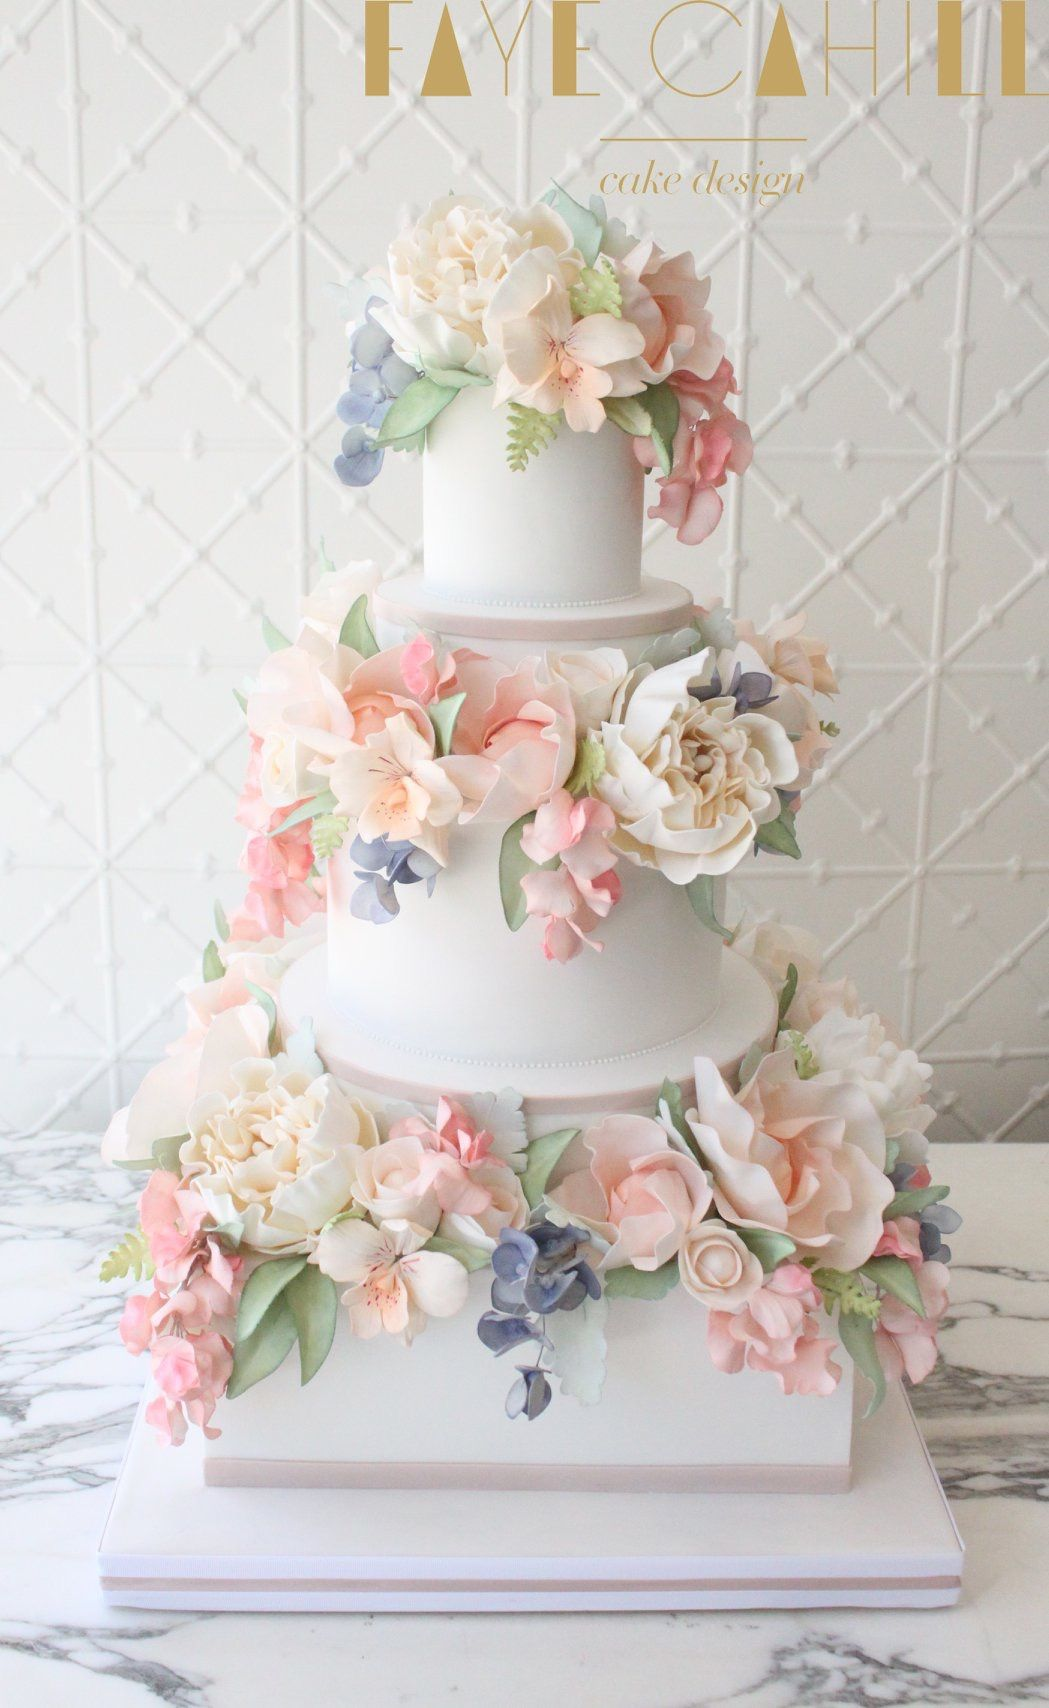 This absolutely gorgeous cake covered with beautiful sugar flowers